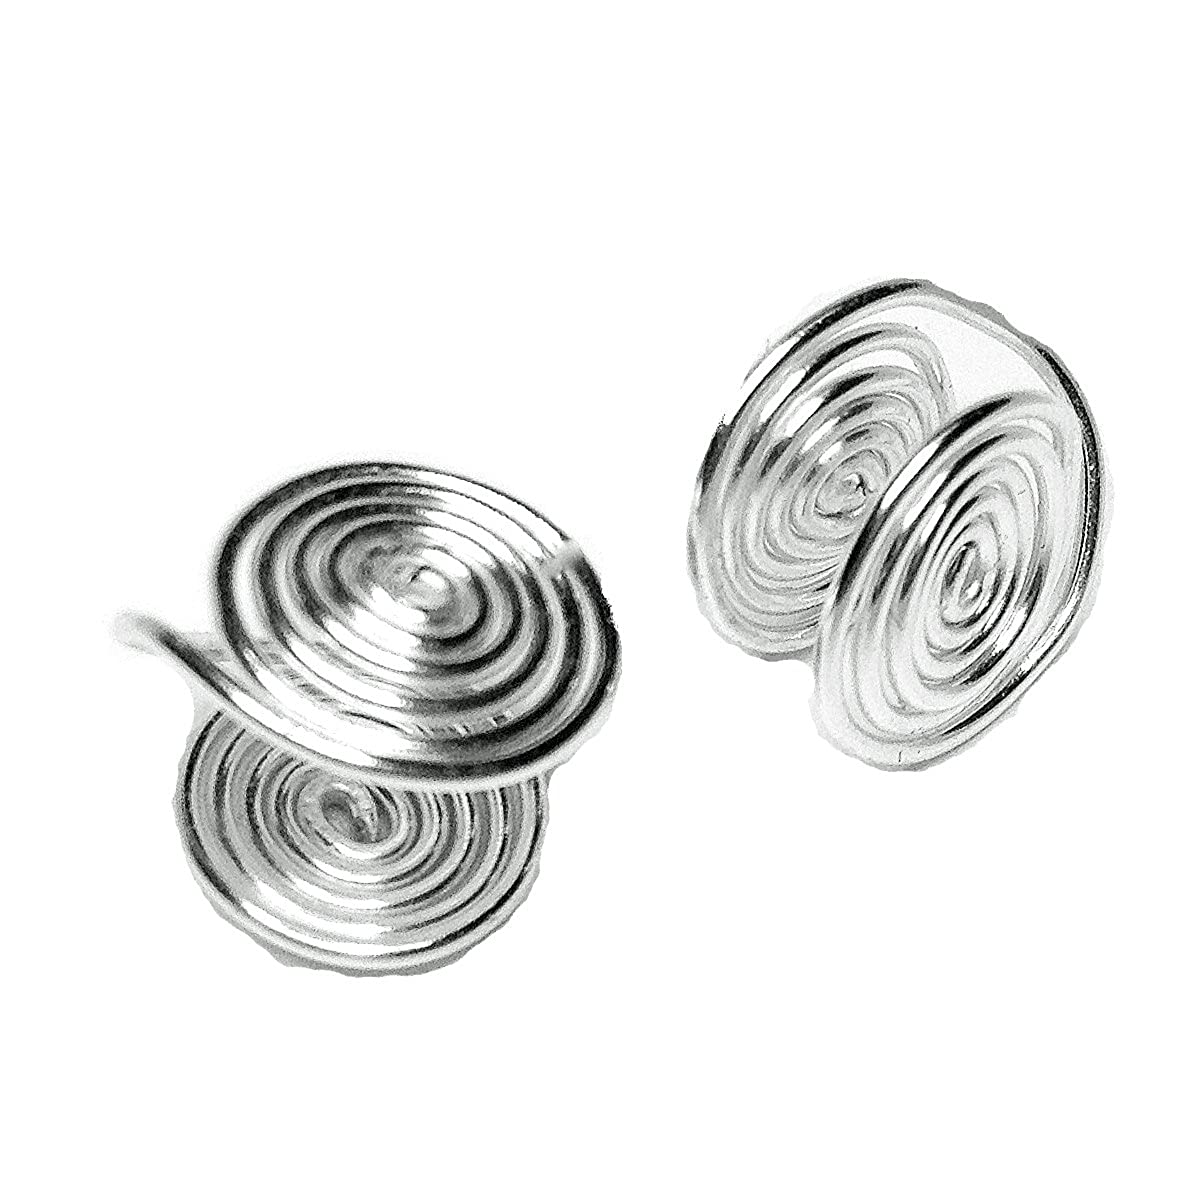 Silver Tone Wire Wrapped Clip-on Earrings about 12mm Handmade in USA by Earlums 4306655720